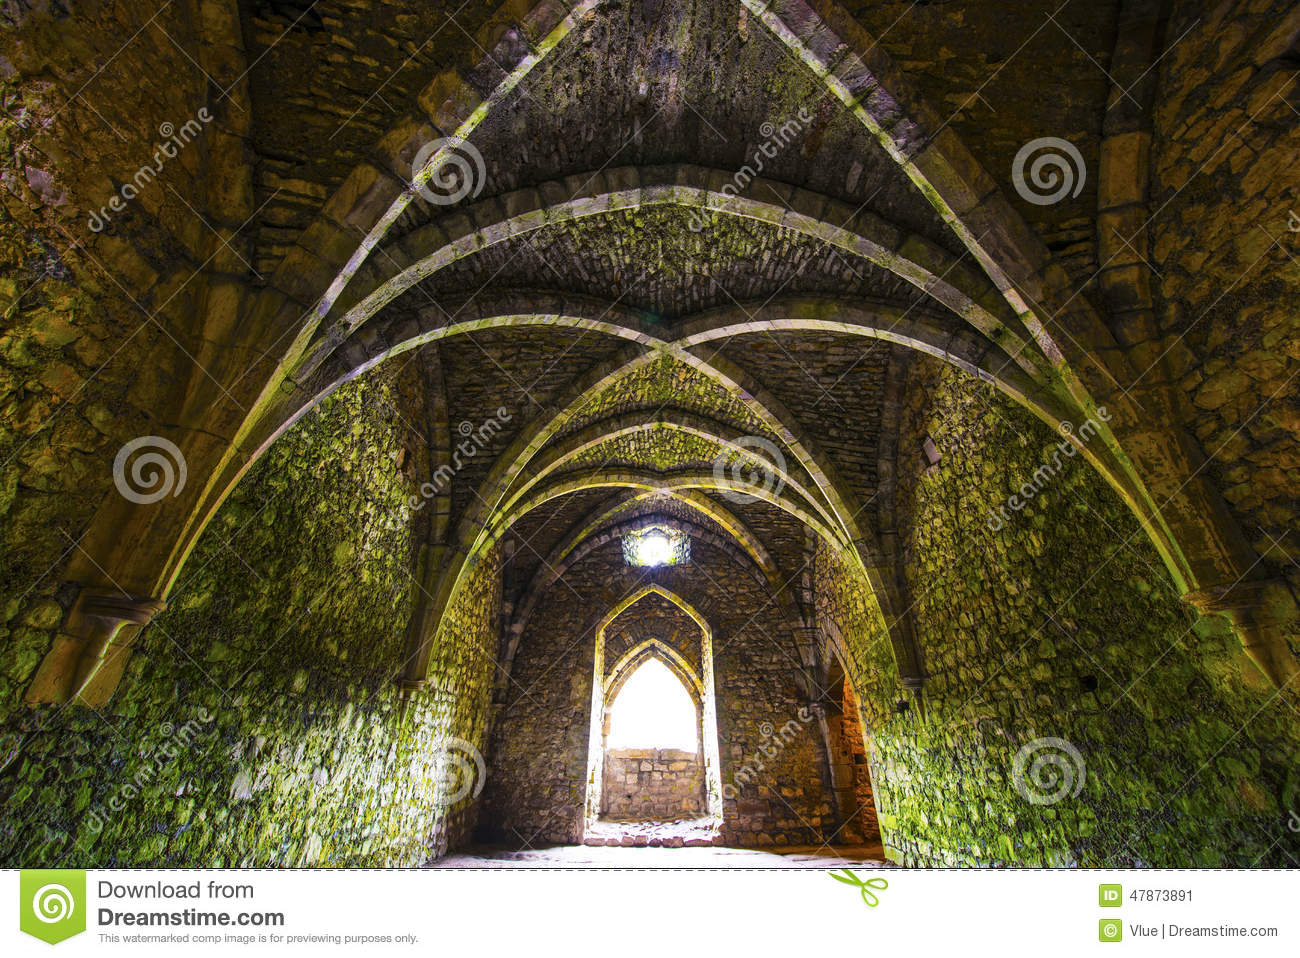 Ancient Medieval Room With Arches Stock Photo Image